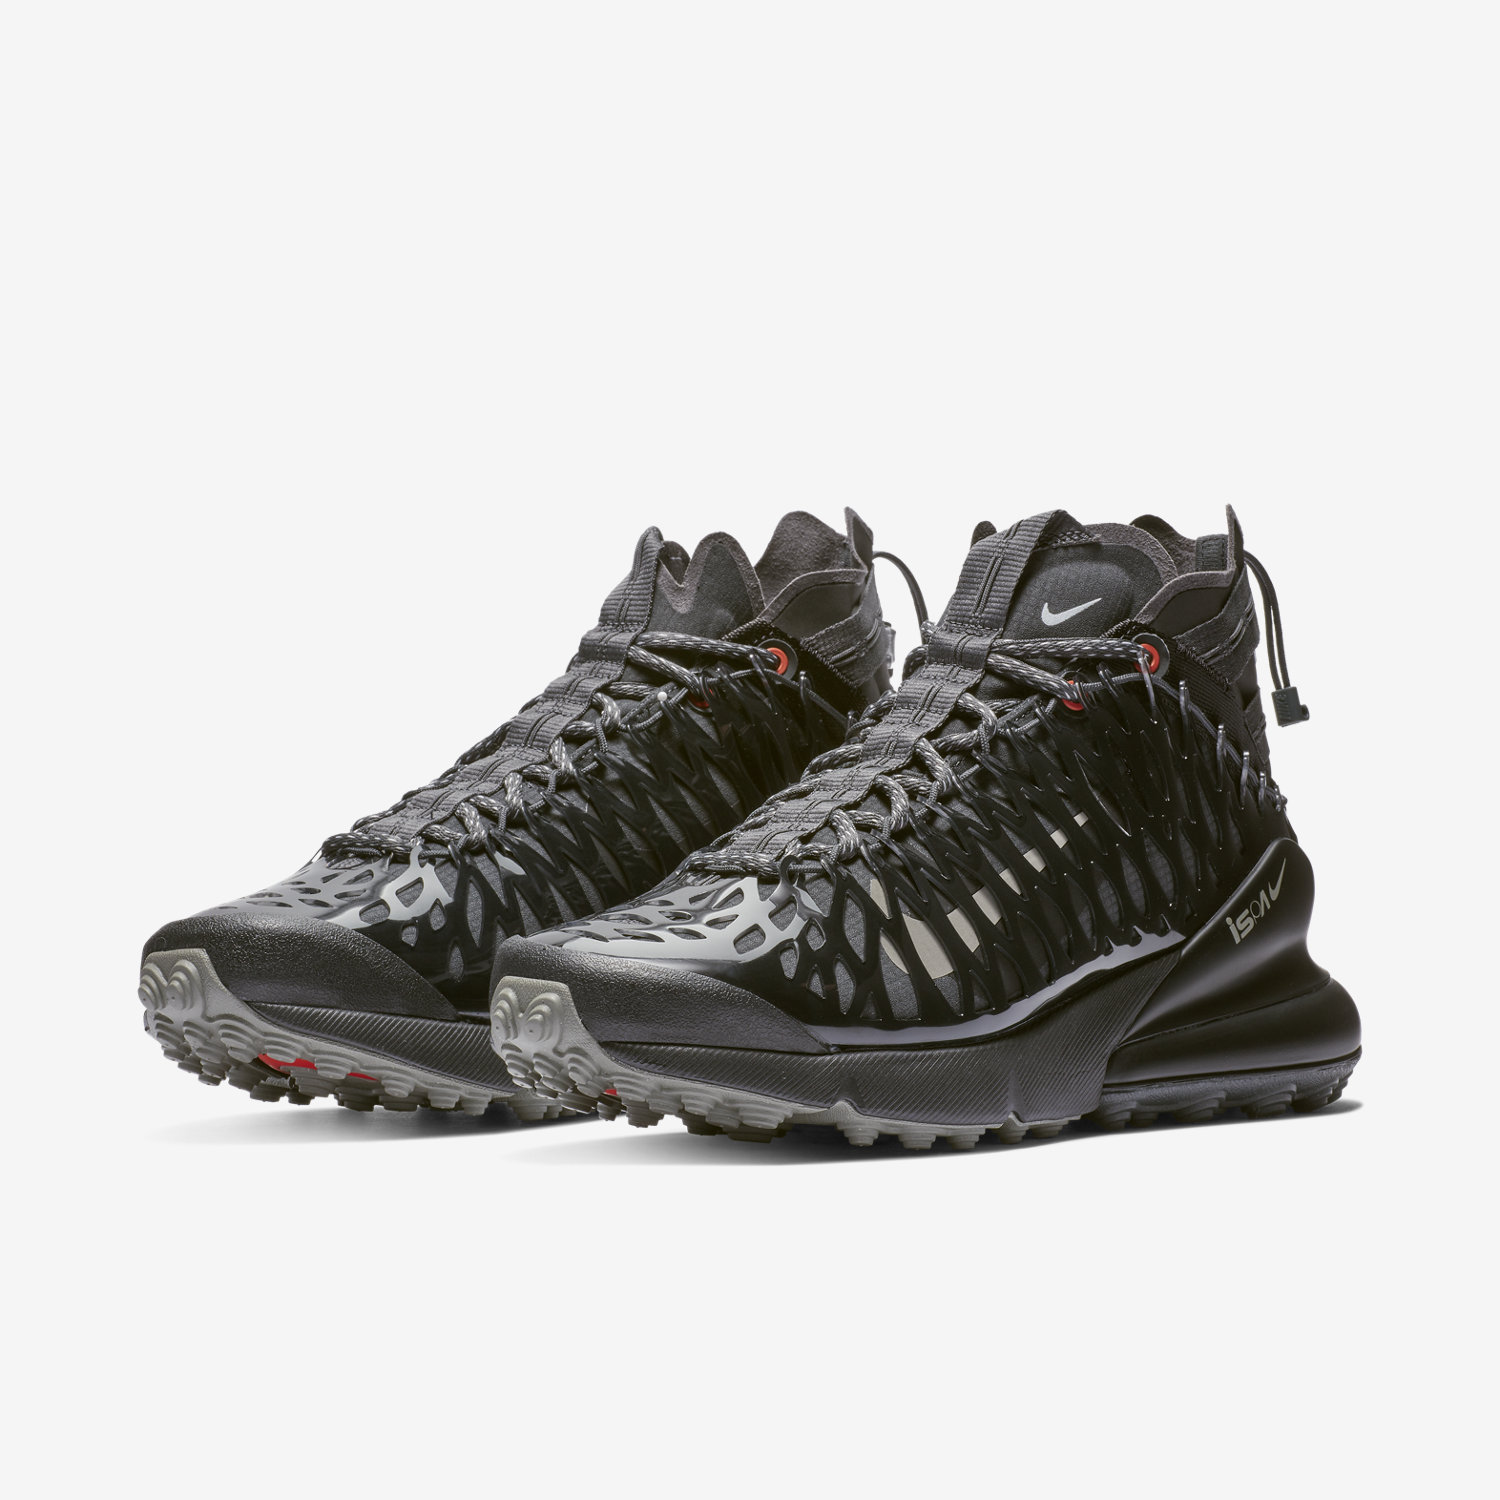 lowest price 2041a 69adb Nike ISPA Air Max 270 Men's Shoe